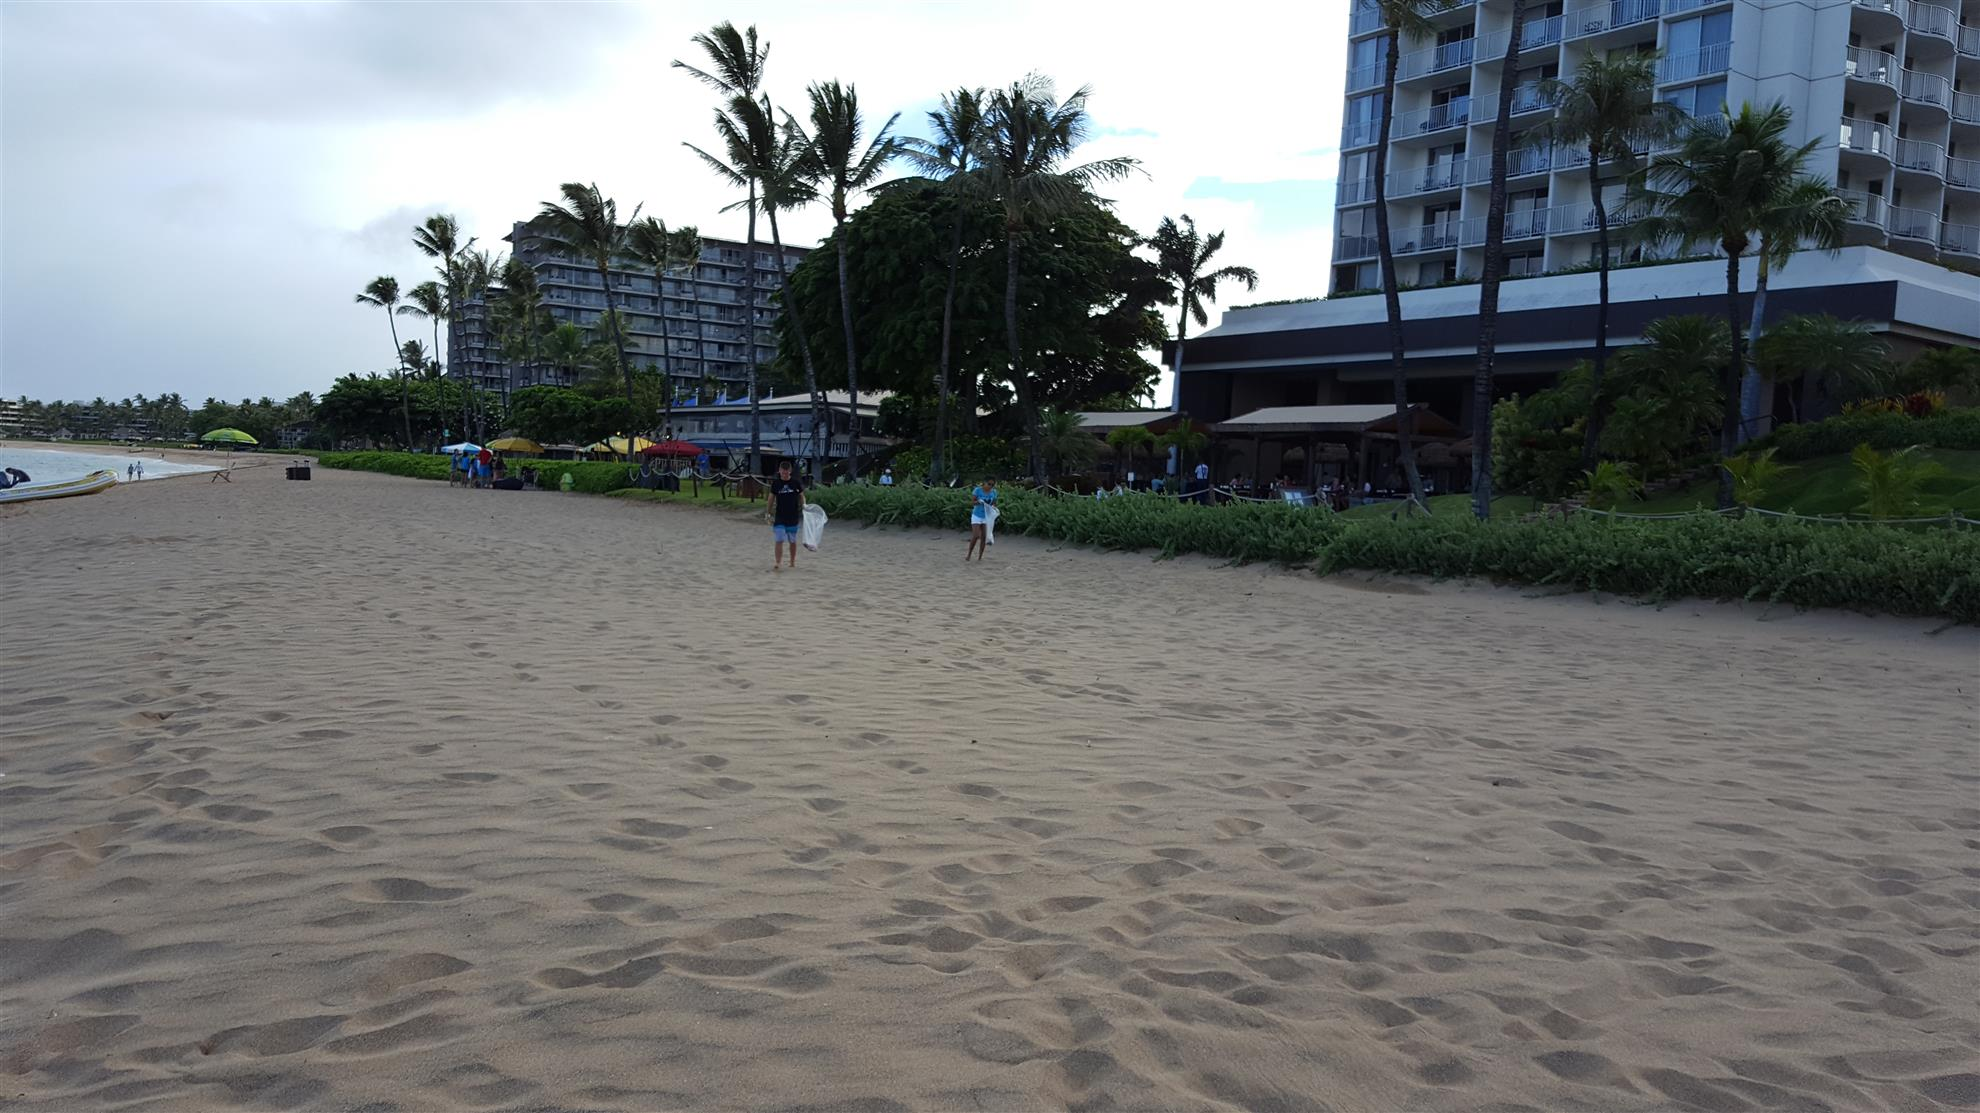 Ka'anapali Beach, at 7AM